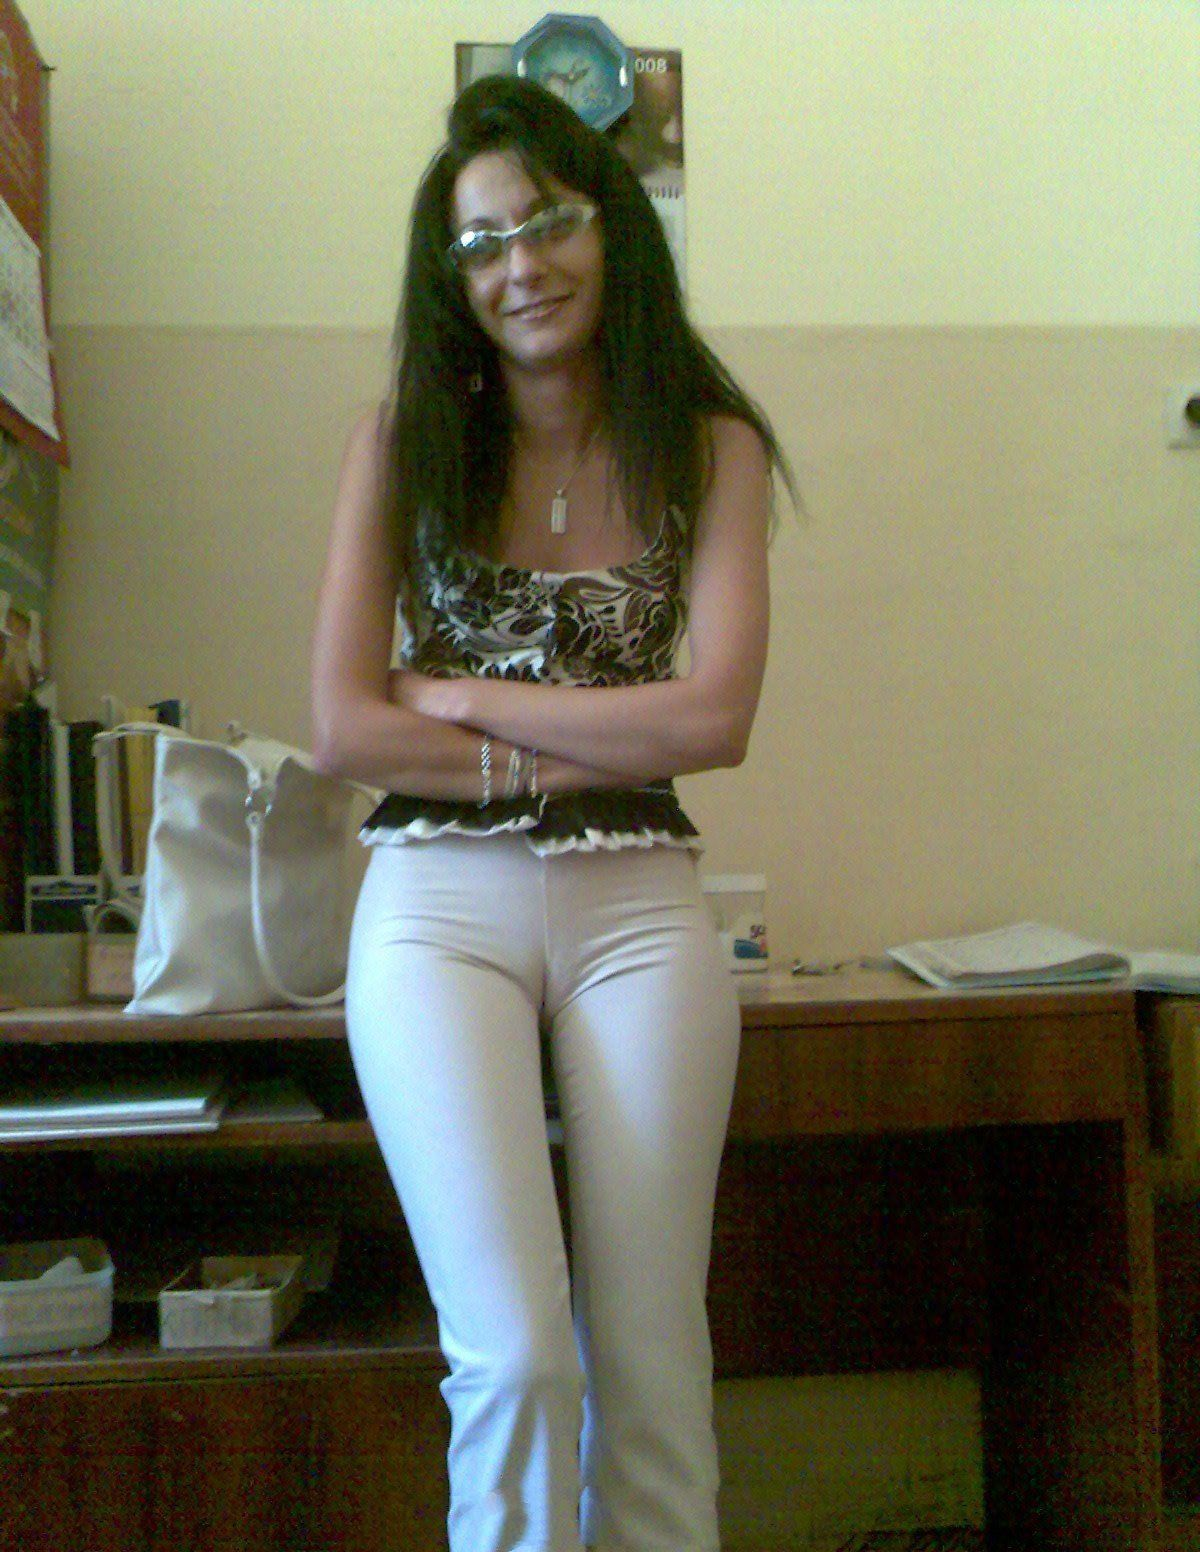 Images of Girl With Huge Camel Toe - Amateur Adult Gallery